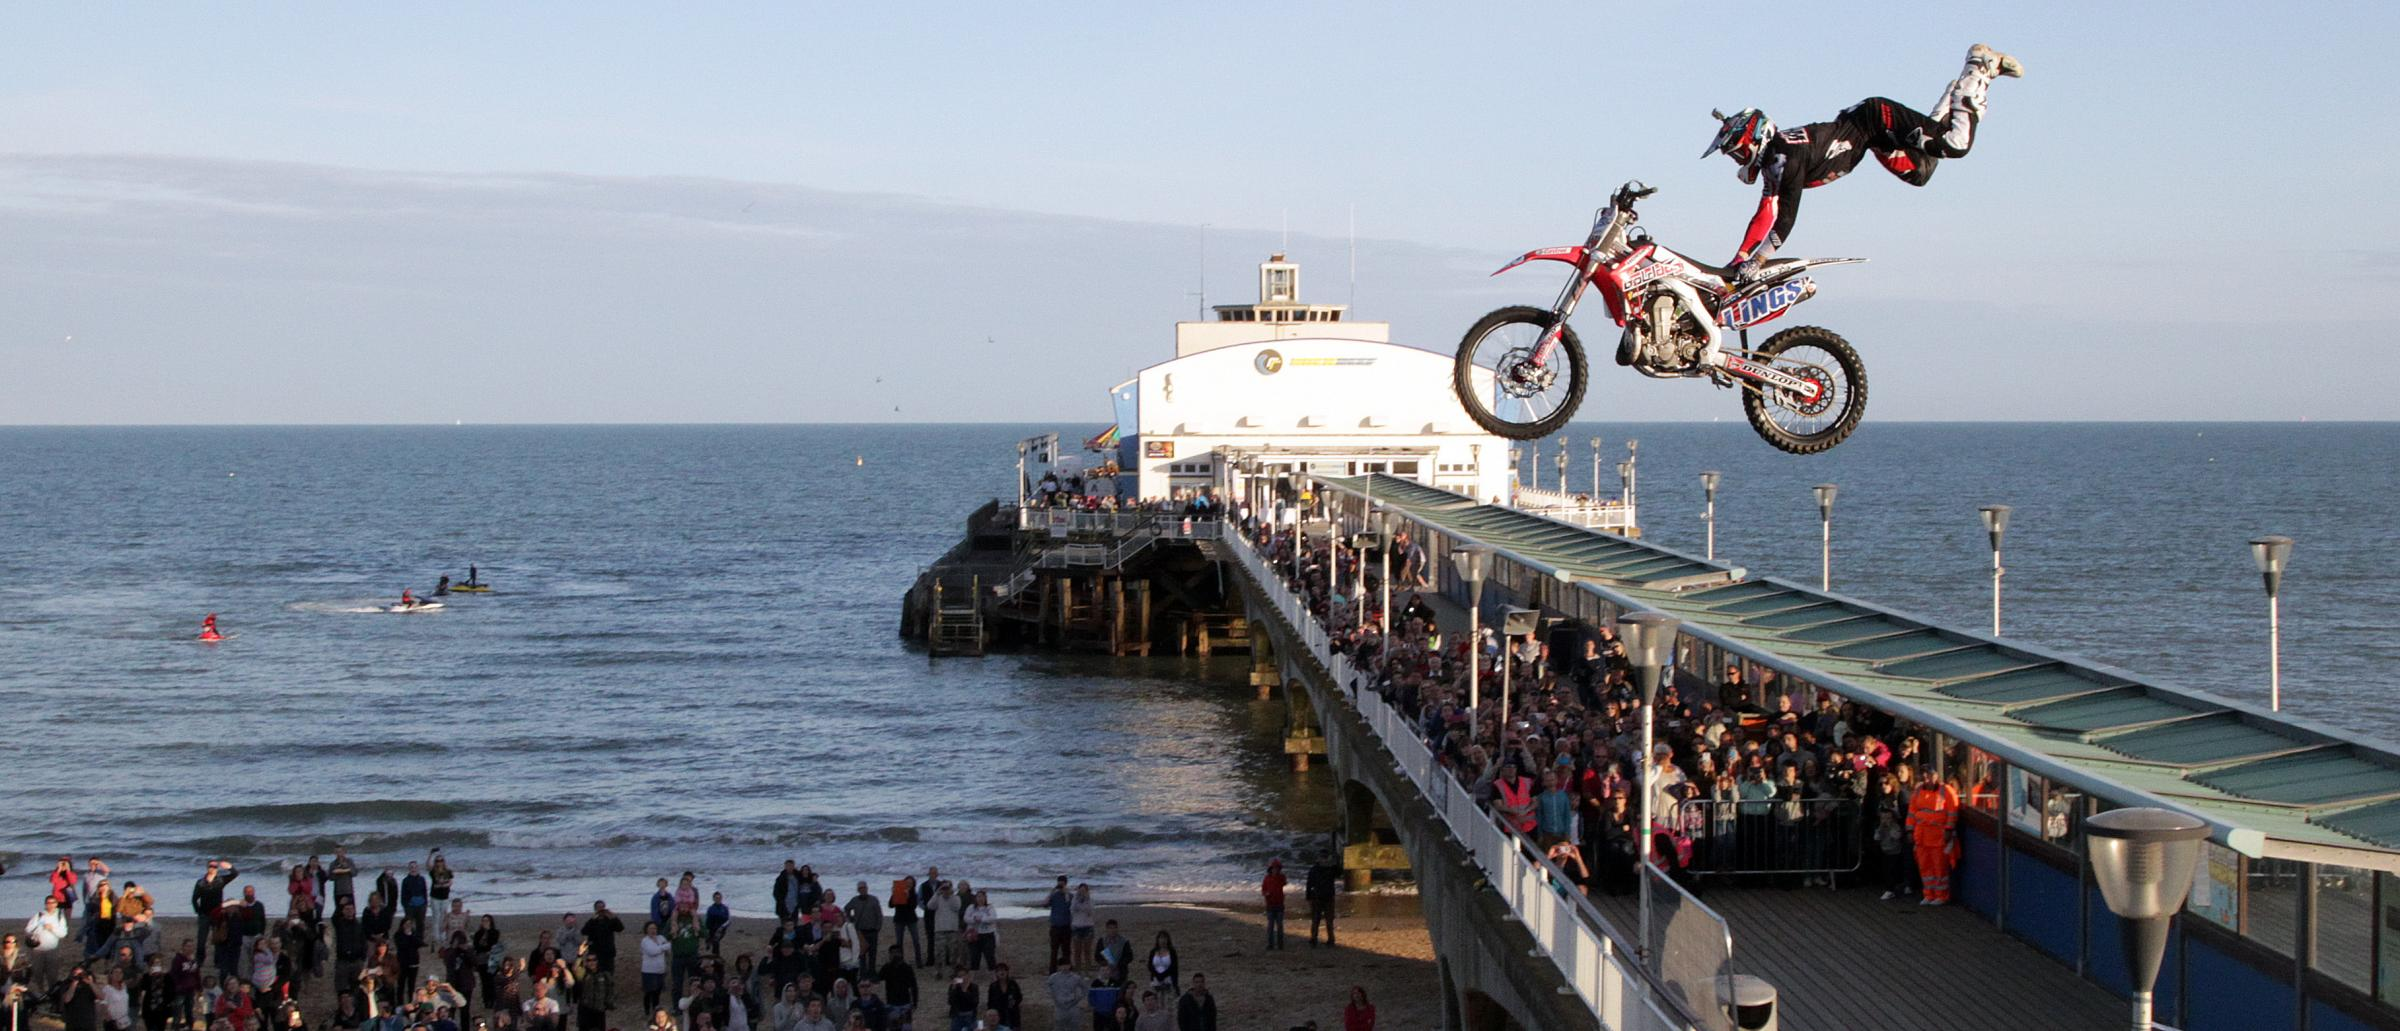 "Roaring success: Bournemouth Wheels Festival to return next year after ""record-breaking"" weekend"